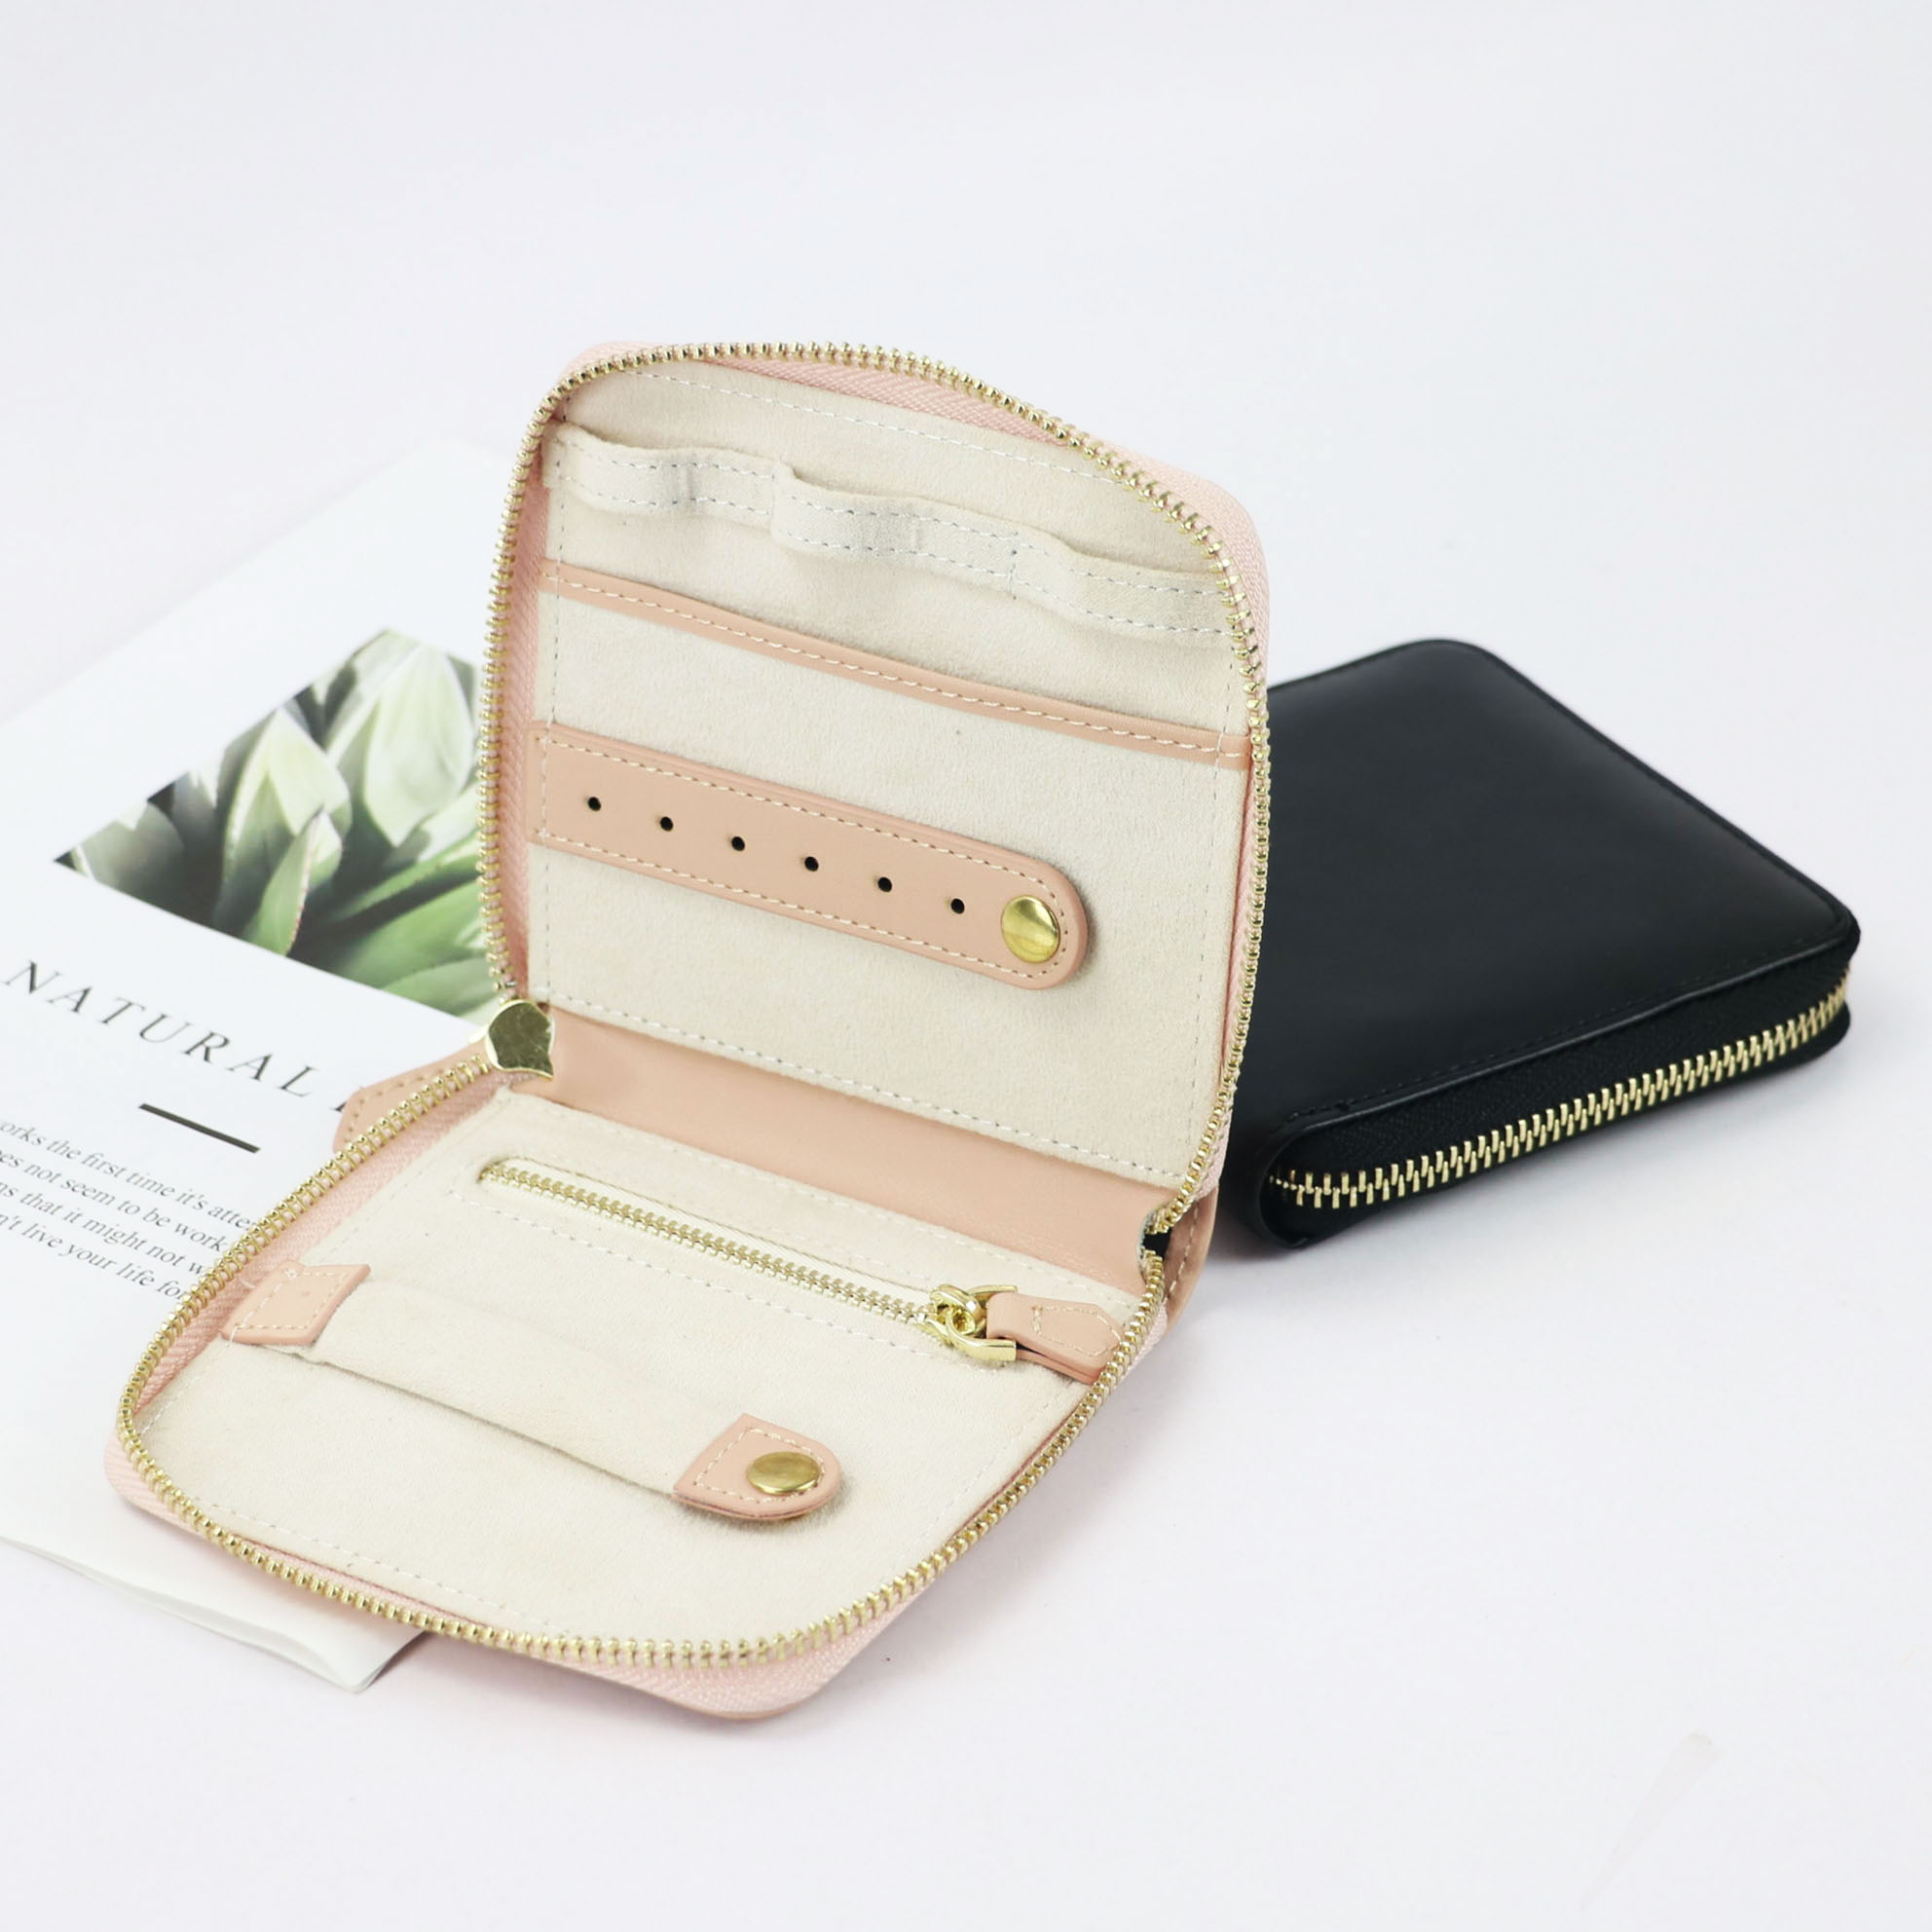 2020 Portable Gift Box Genuine Leather Travel Jewelry Case Boxes New Designer Box For Jewelry Fashion Jewelry Organizer Display